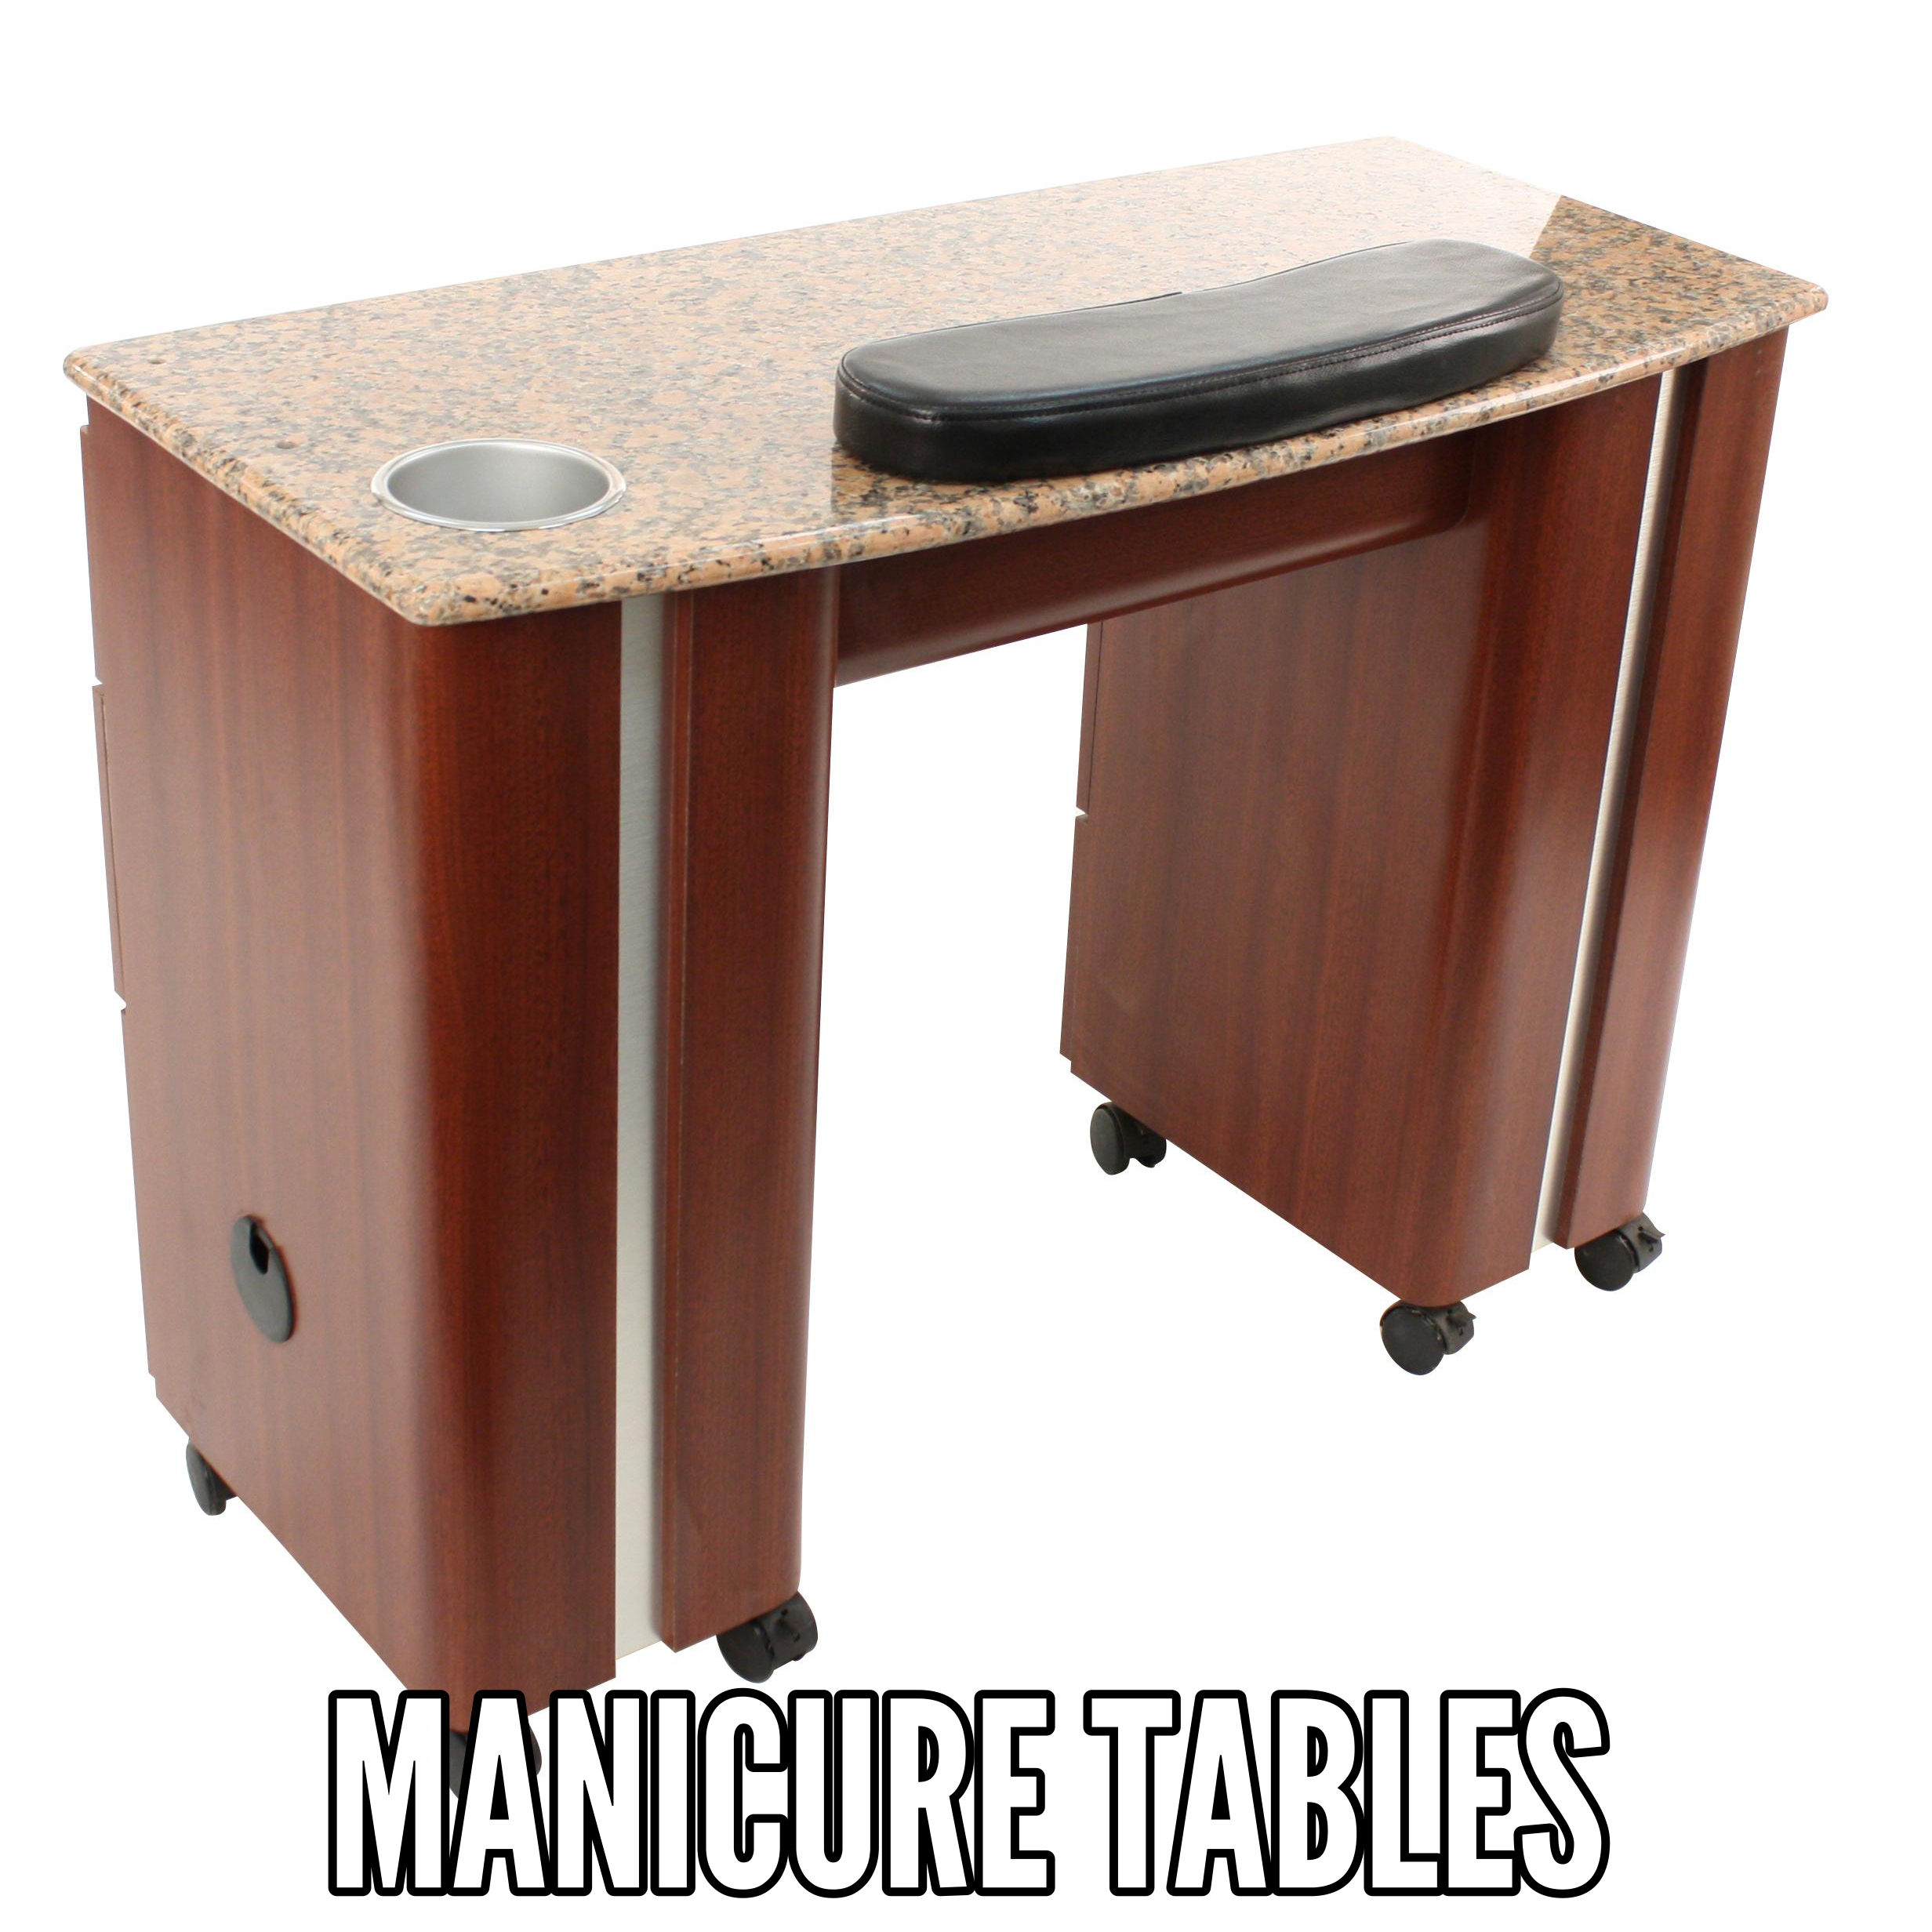 uv special hidden manicure table dark marble ita slots wood picture wheels sale black snow italica for top with of